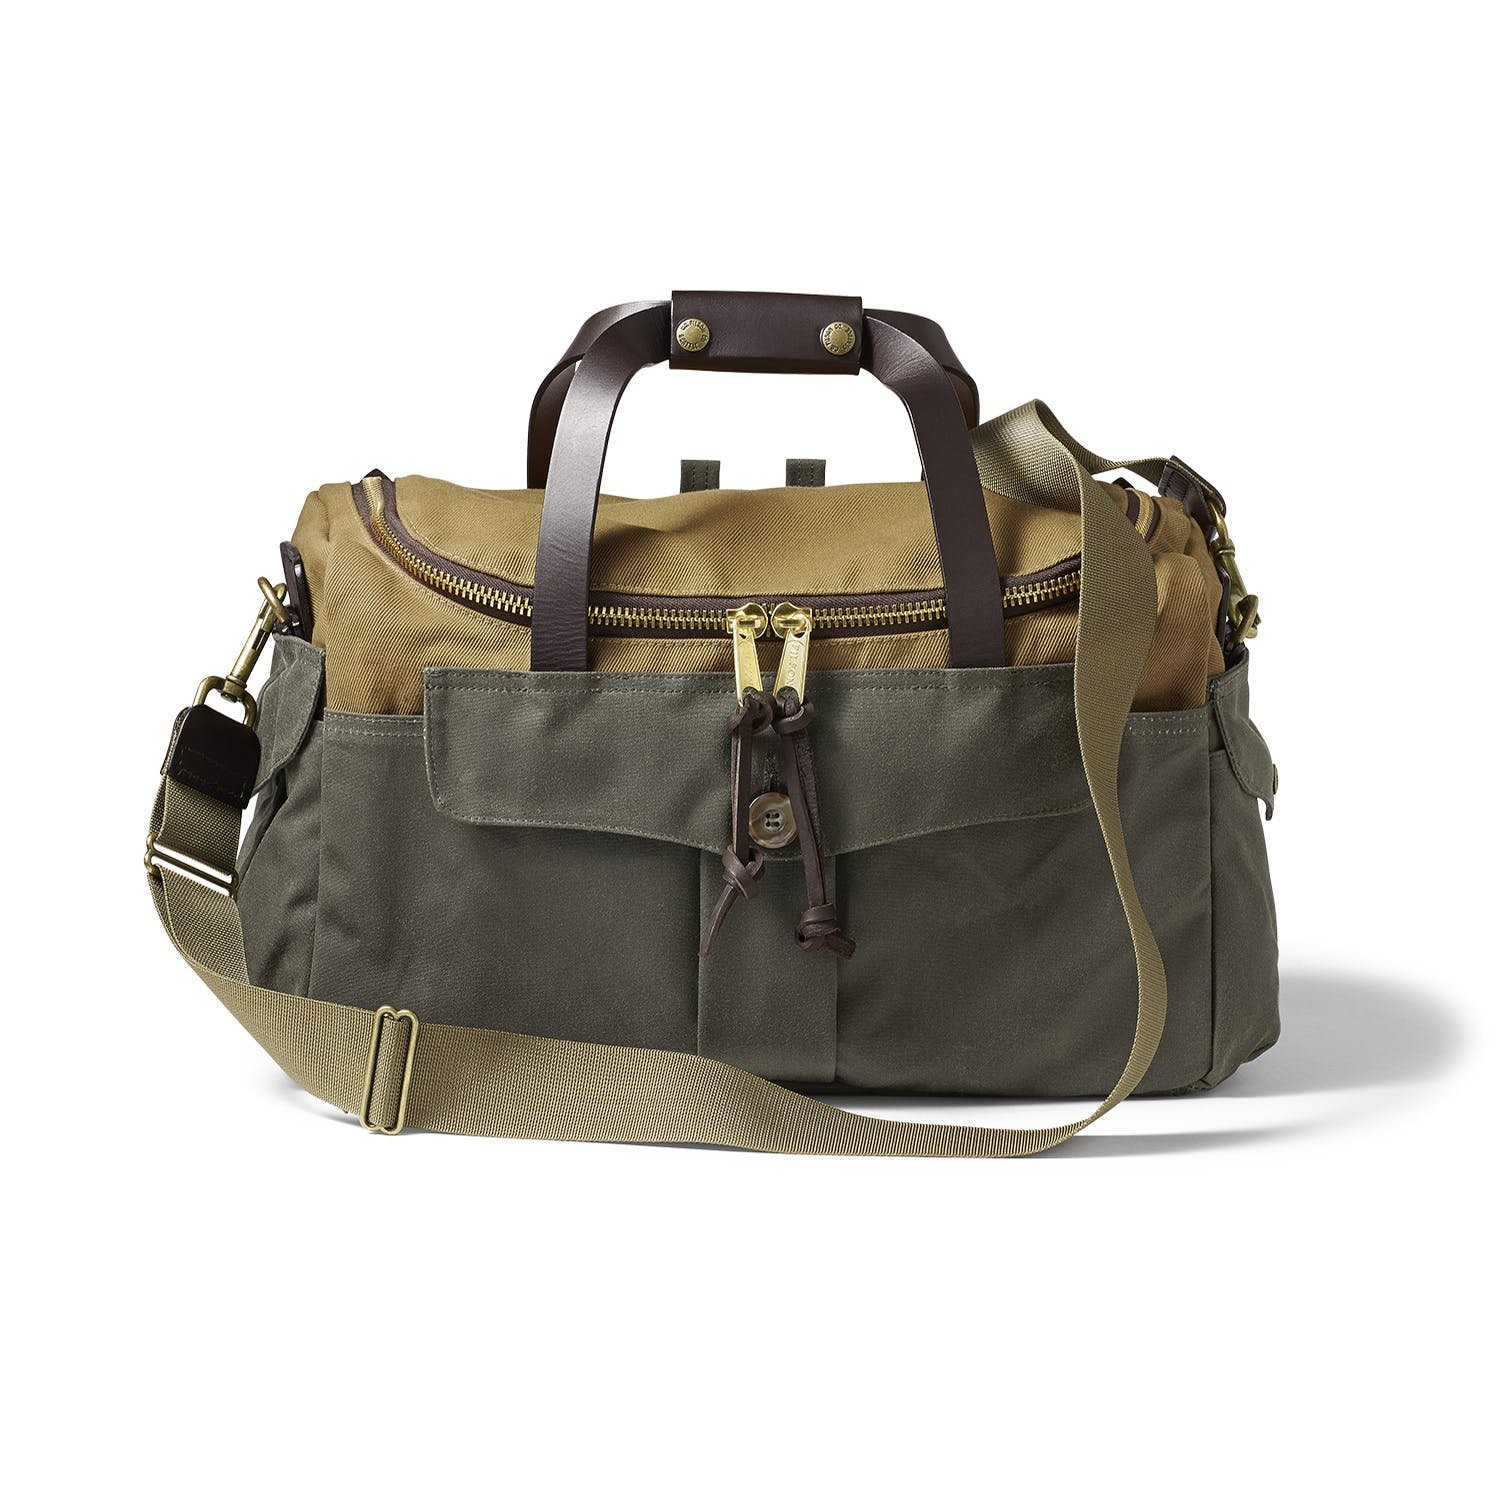 Filson Heritage Sportsman Bag Tan/Otter Green 👀